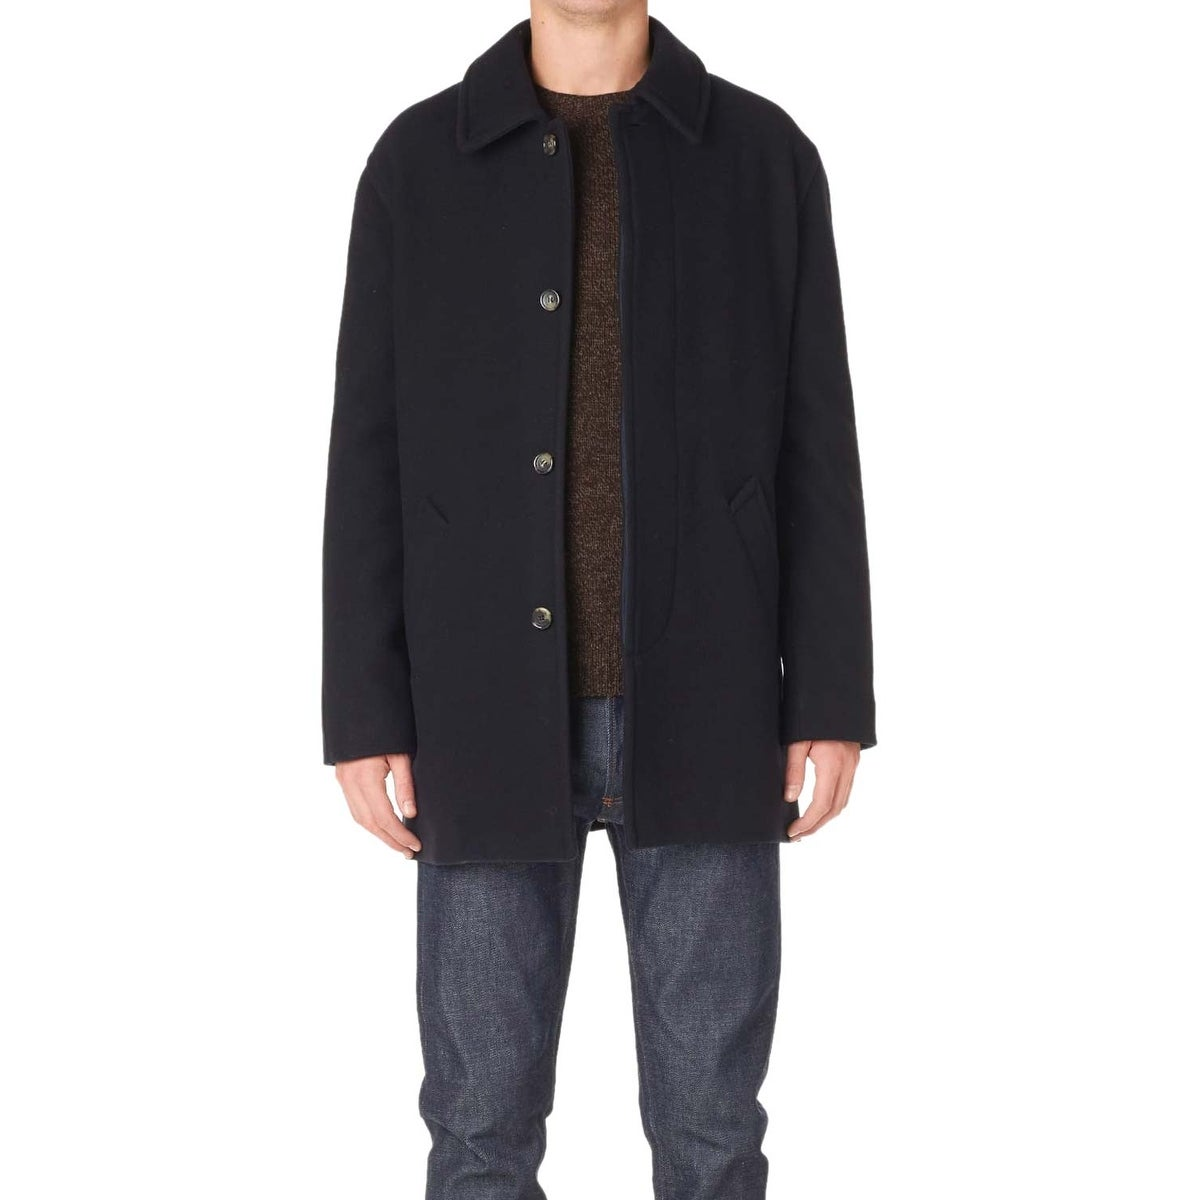 91715a9f709 Shop A.P.C. Sven Mac Coat Large Dark Navy Wool Blend Fully Lined - Free  Shipping Today - Overstock - 21956585